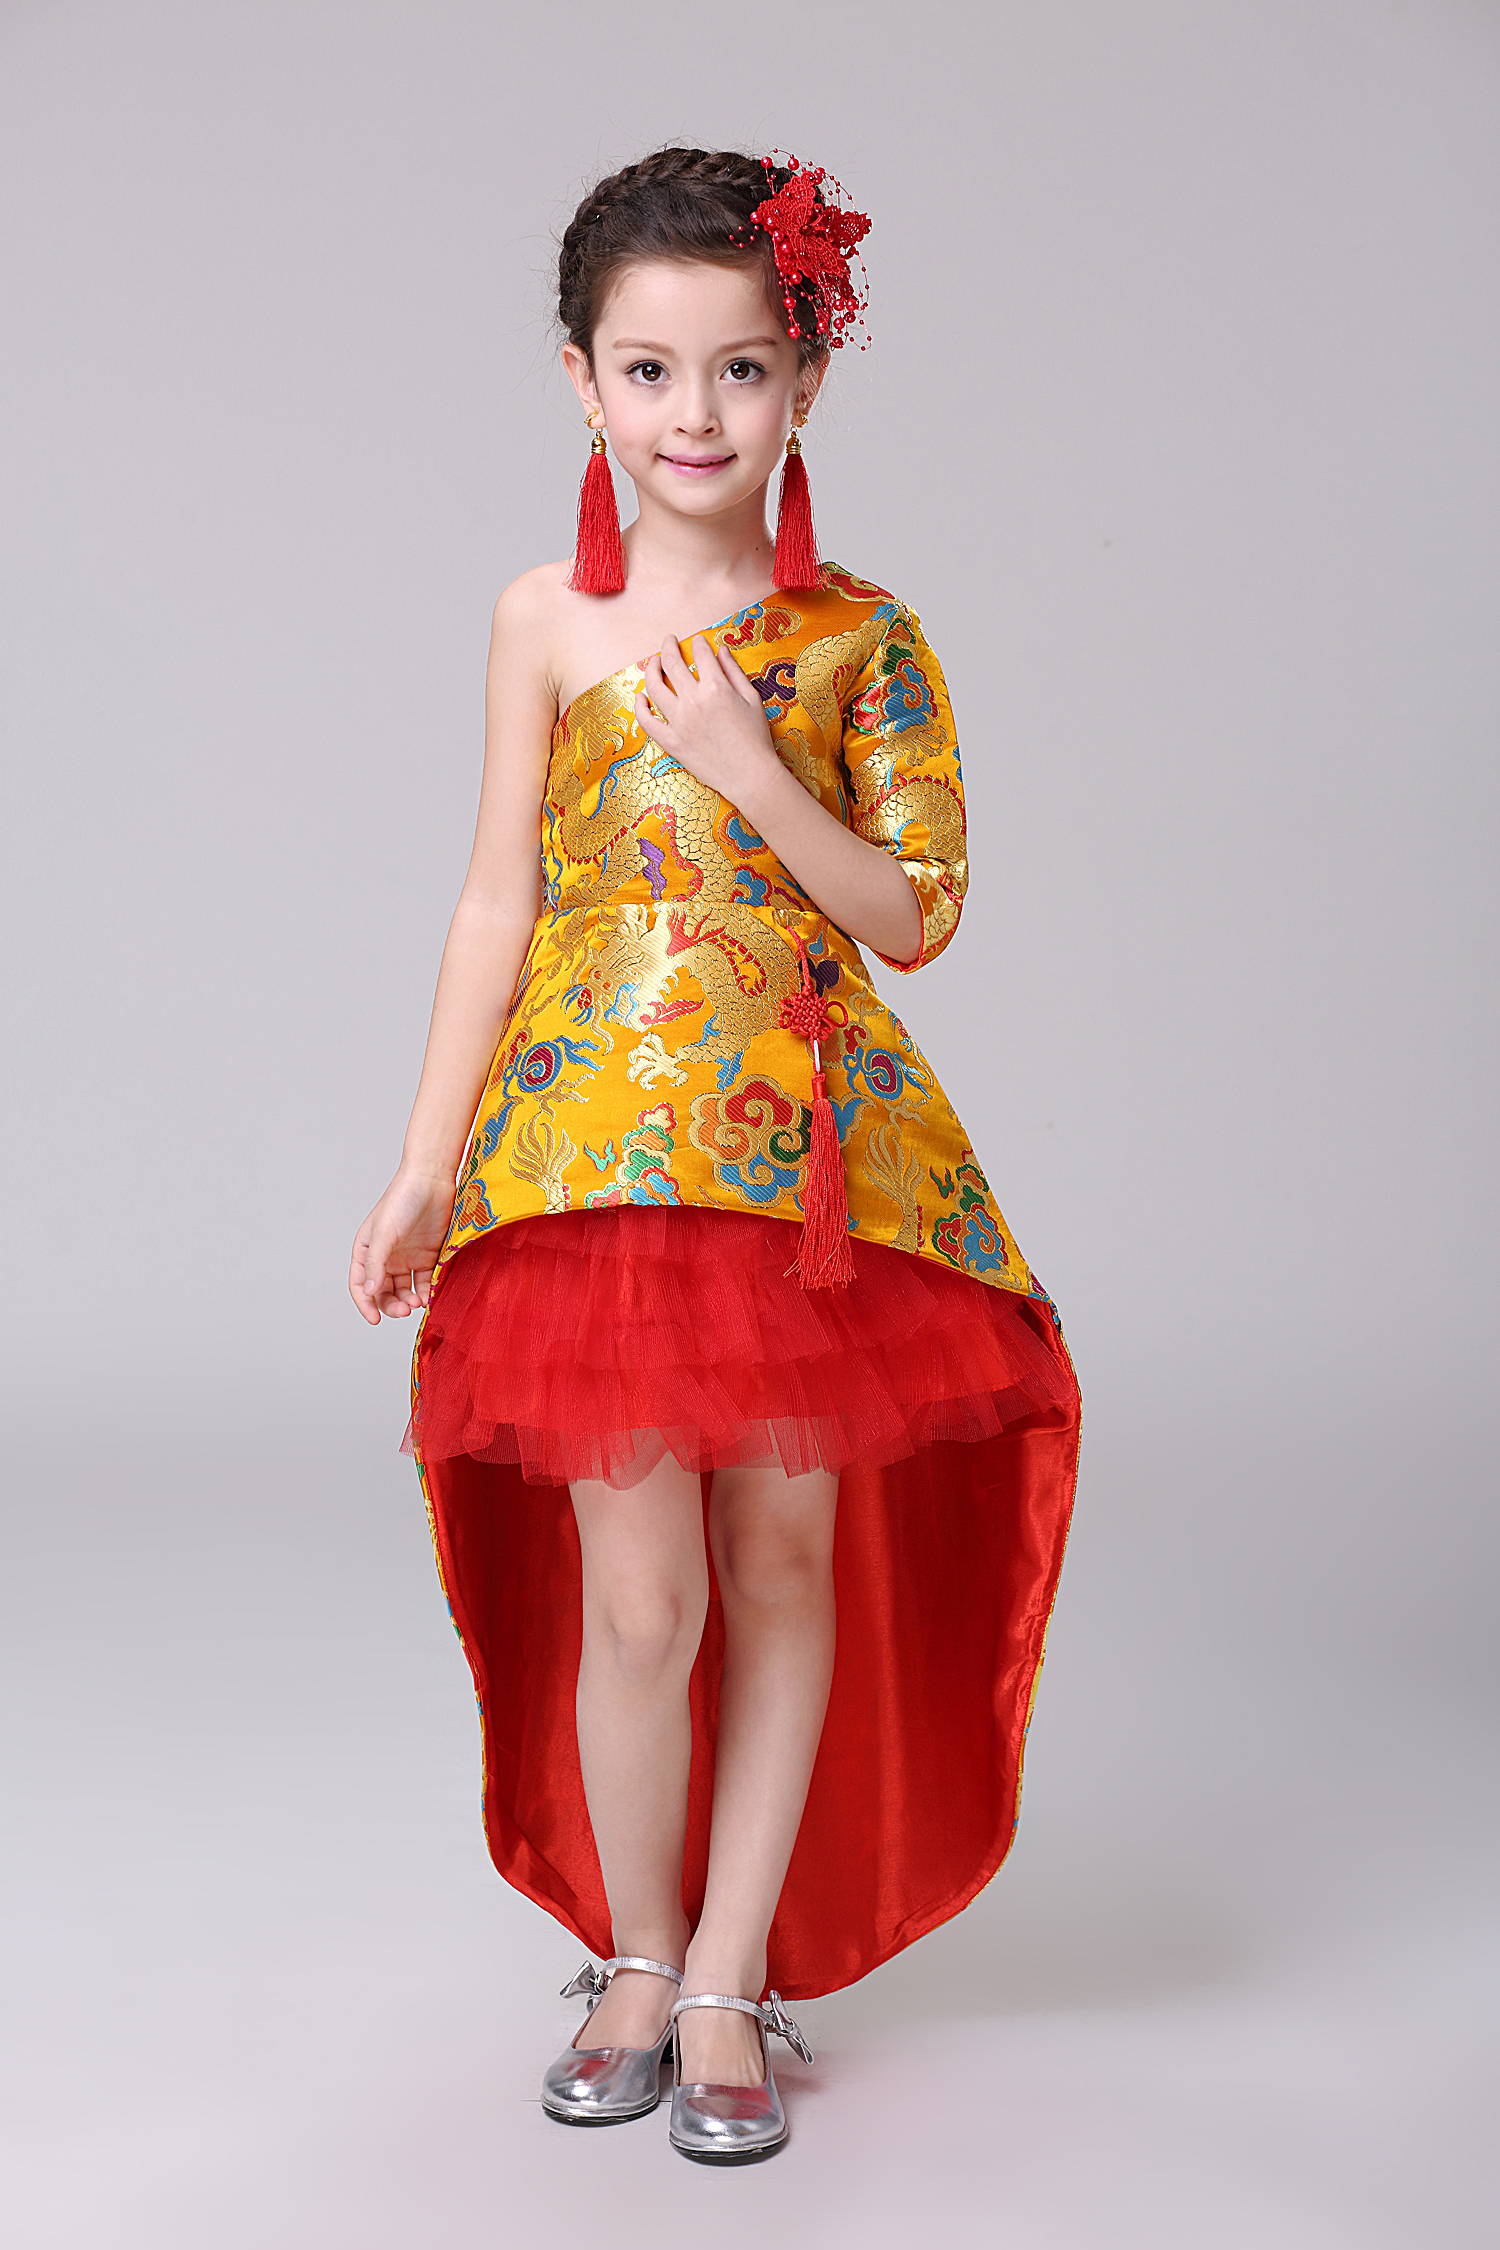 5f438af6cd0b Children Flamenco Dress Girl Princess Dress Kids Trailing Skirts ...